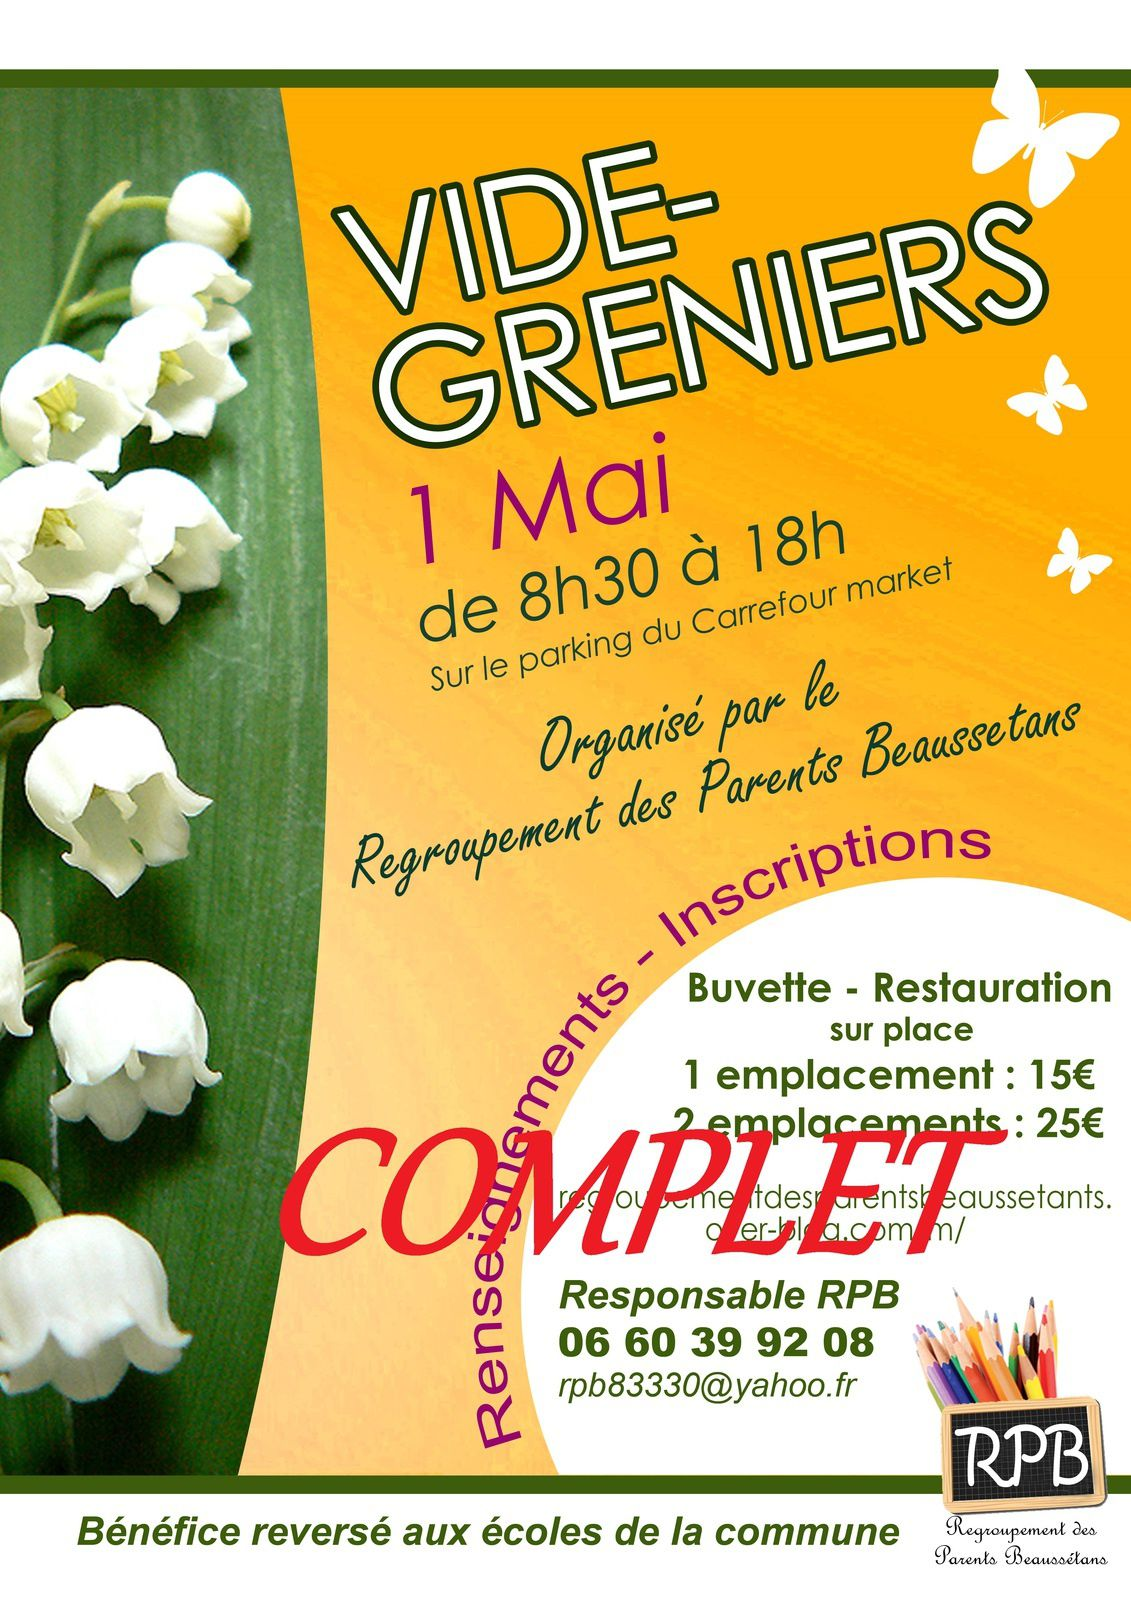 Vide greniers complet